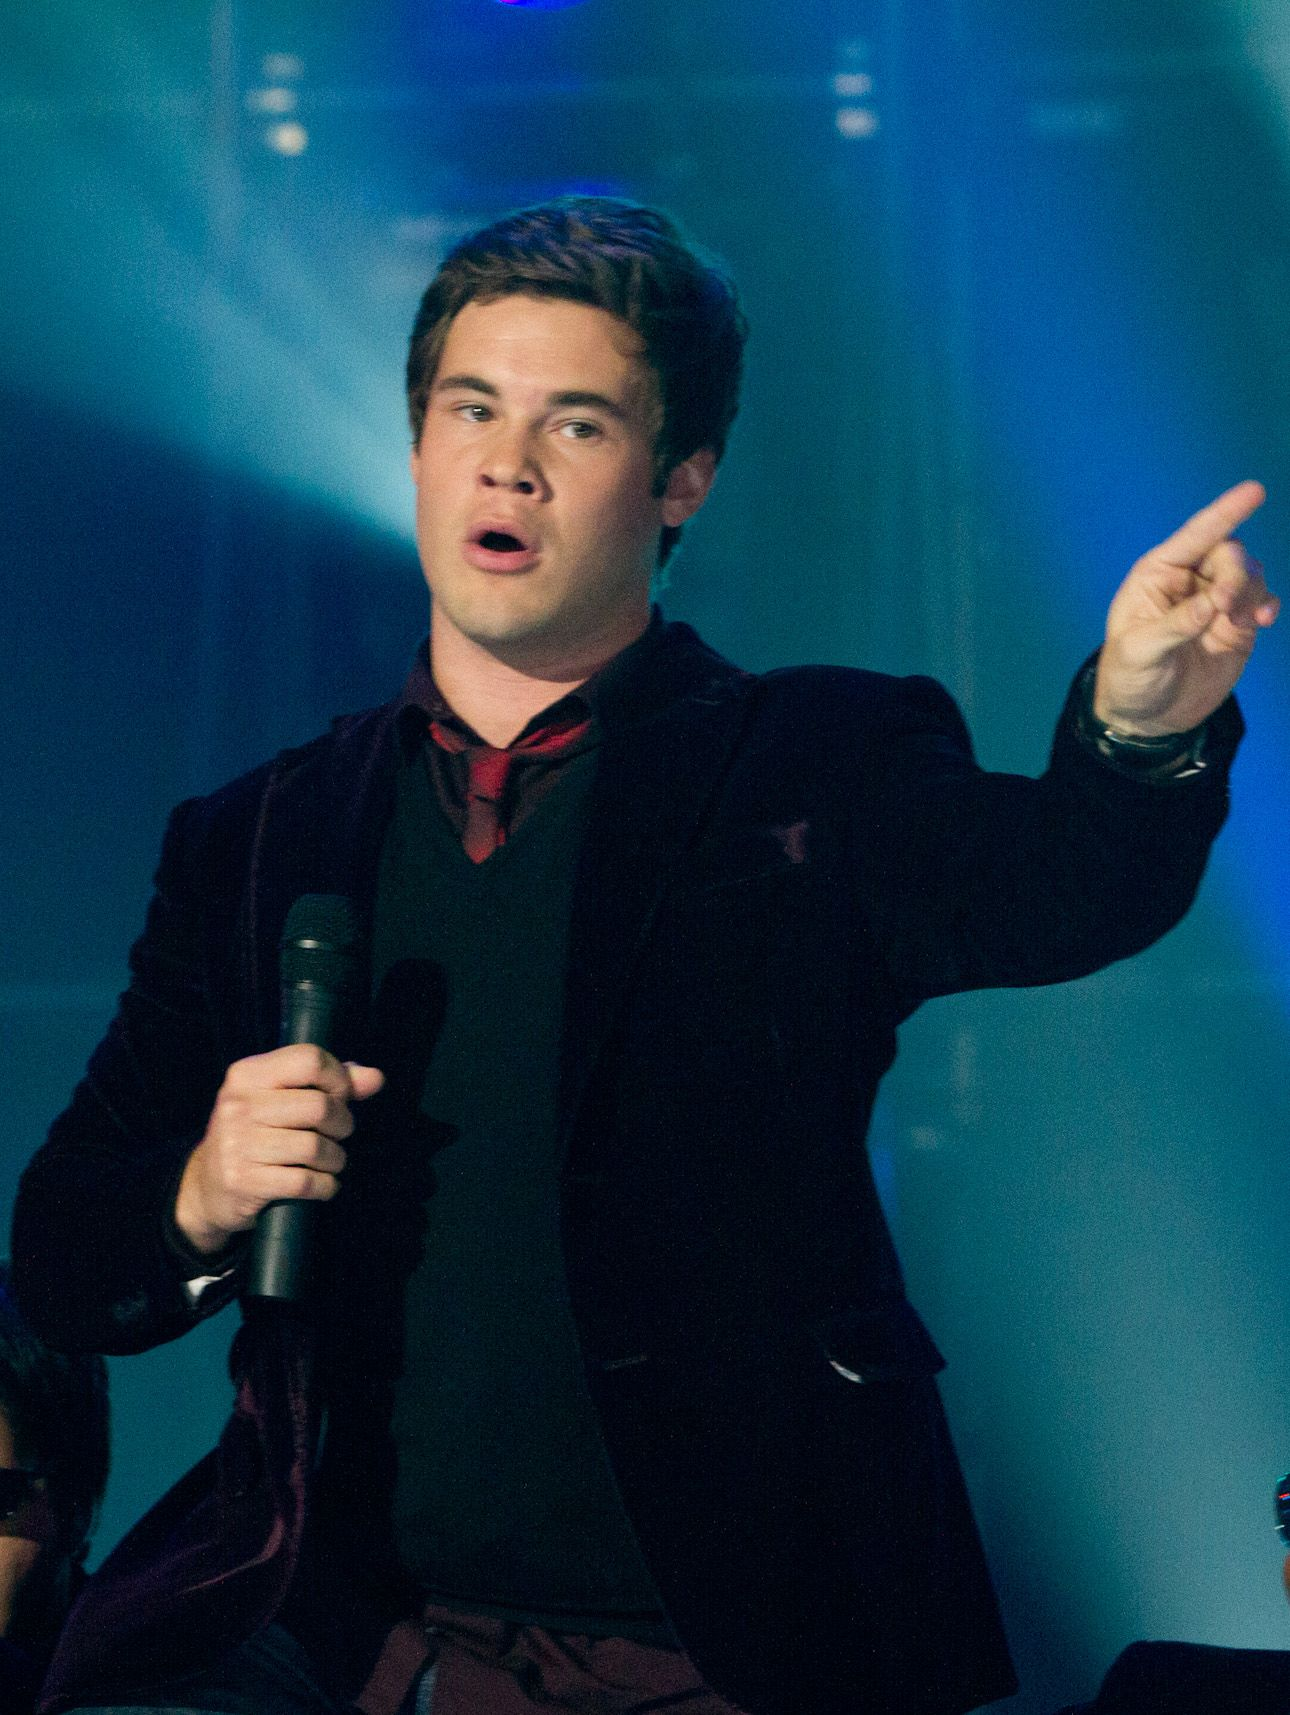 Adam Devine From Pitch Perfect And Workaholics In Pitch Perfect